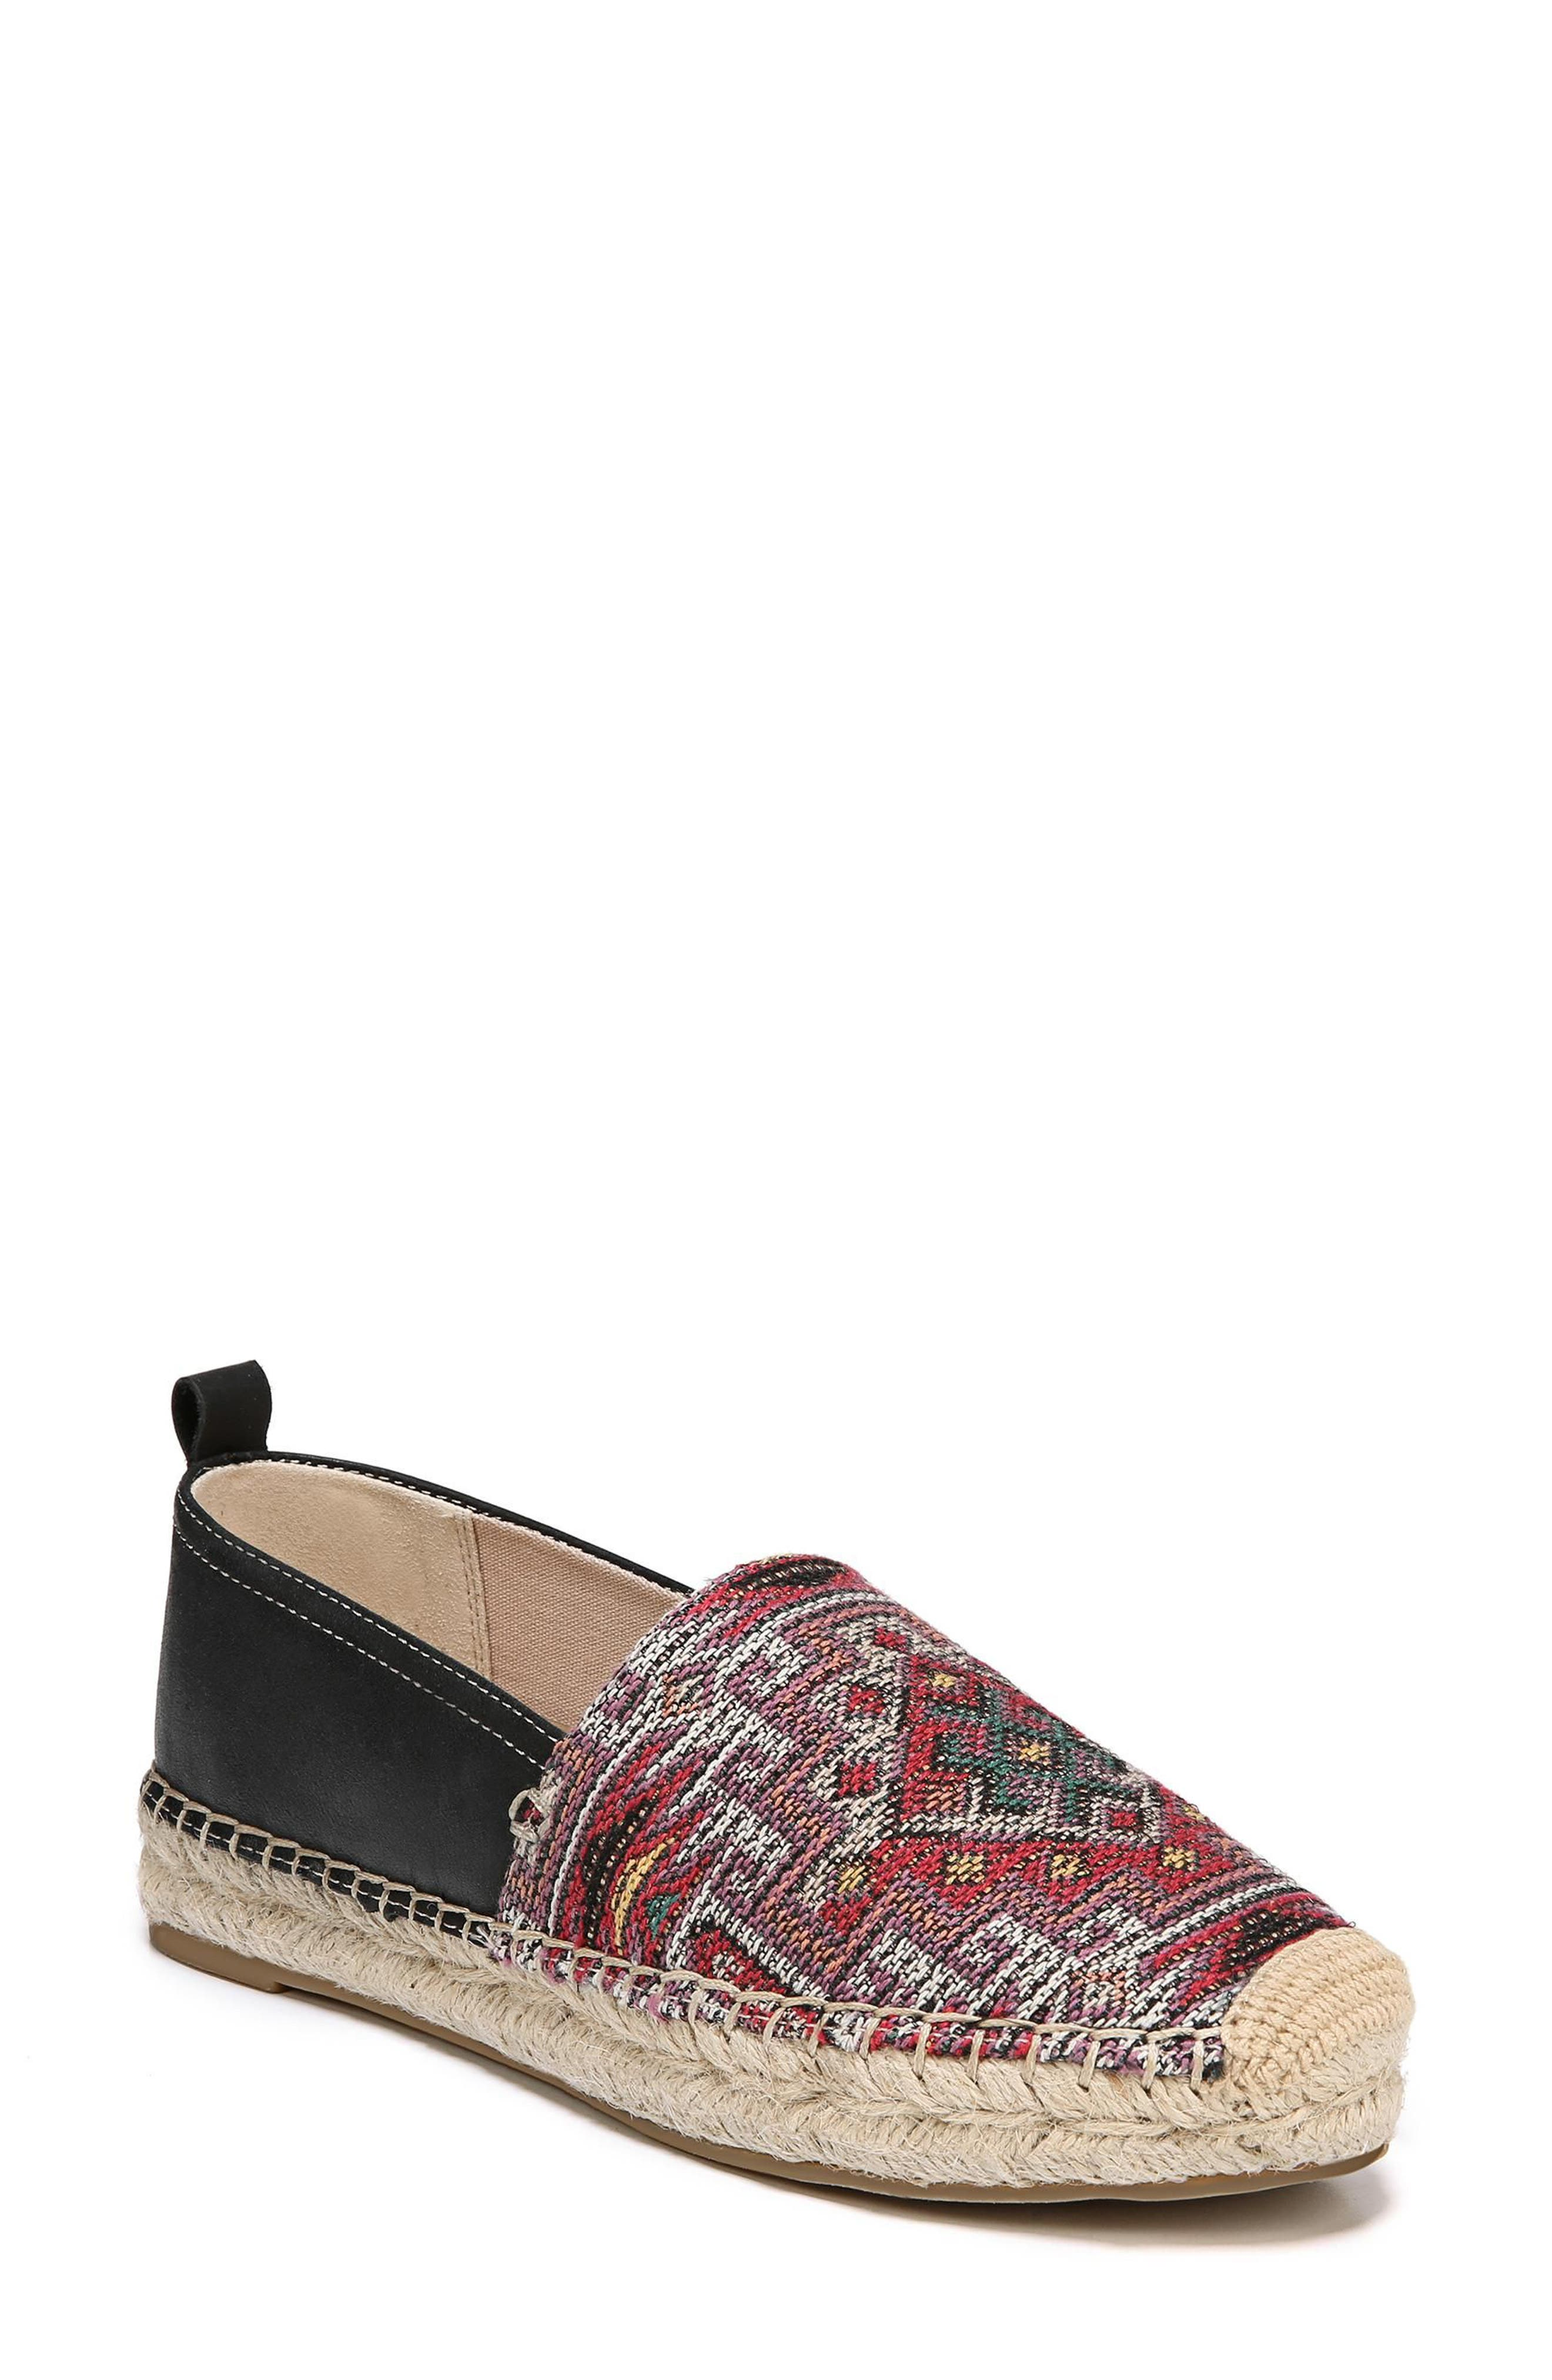 Khloe Espadrille Flat,                             Main thumbnail 1, color,                             RED PRINT LEATHER